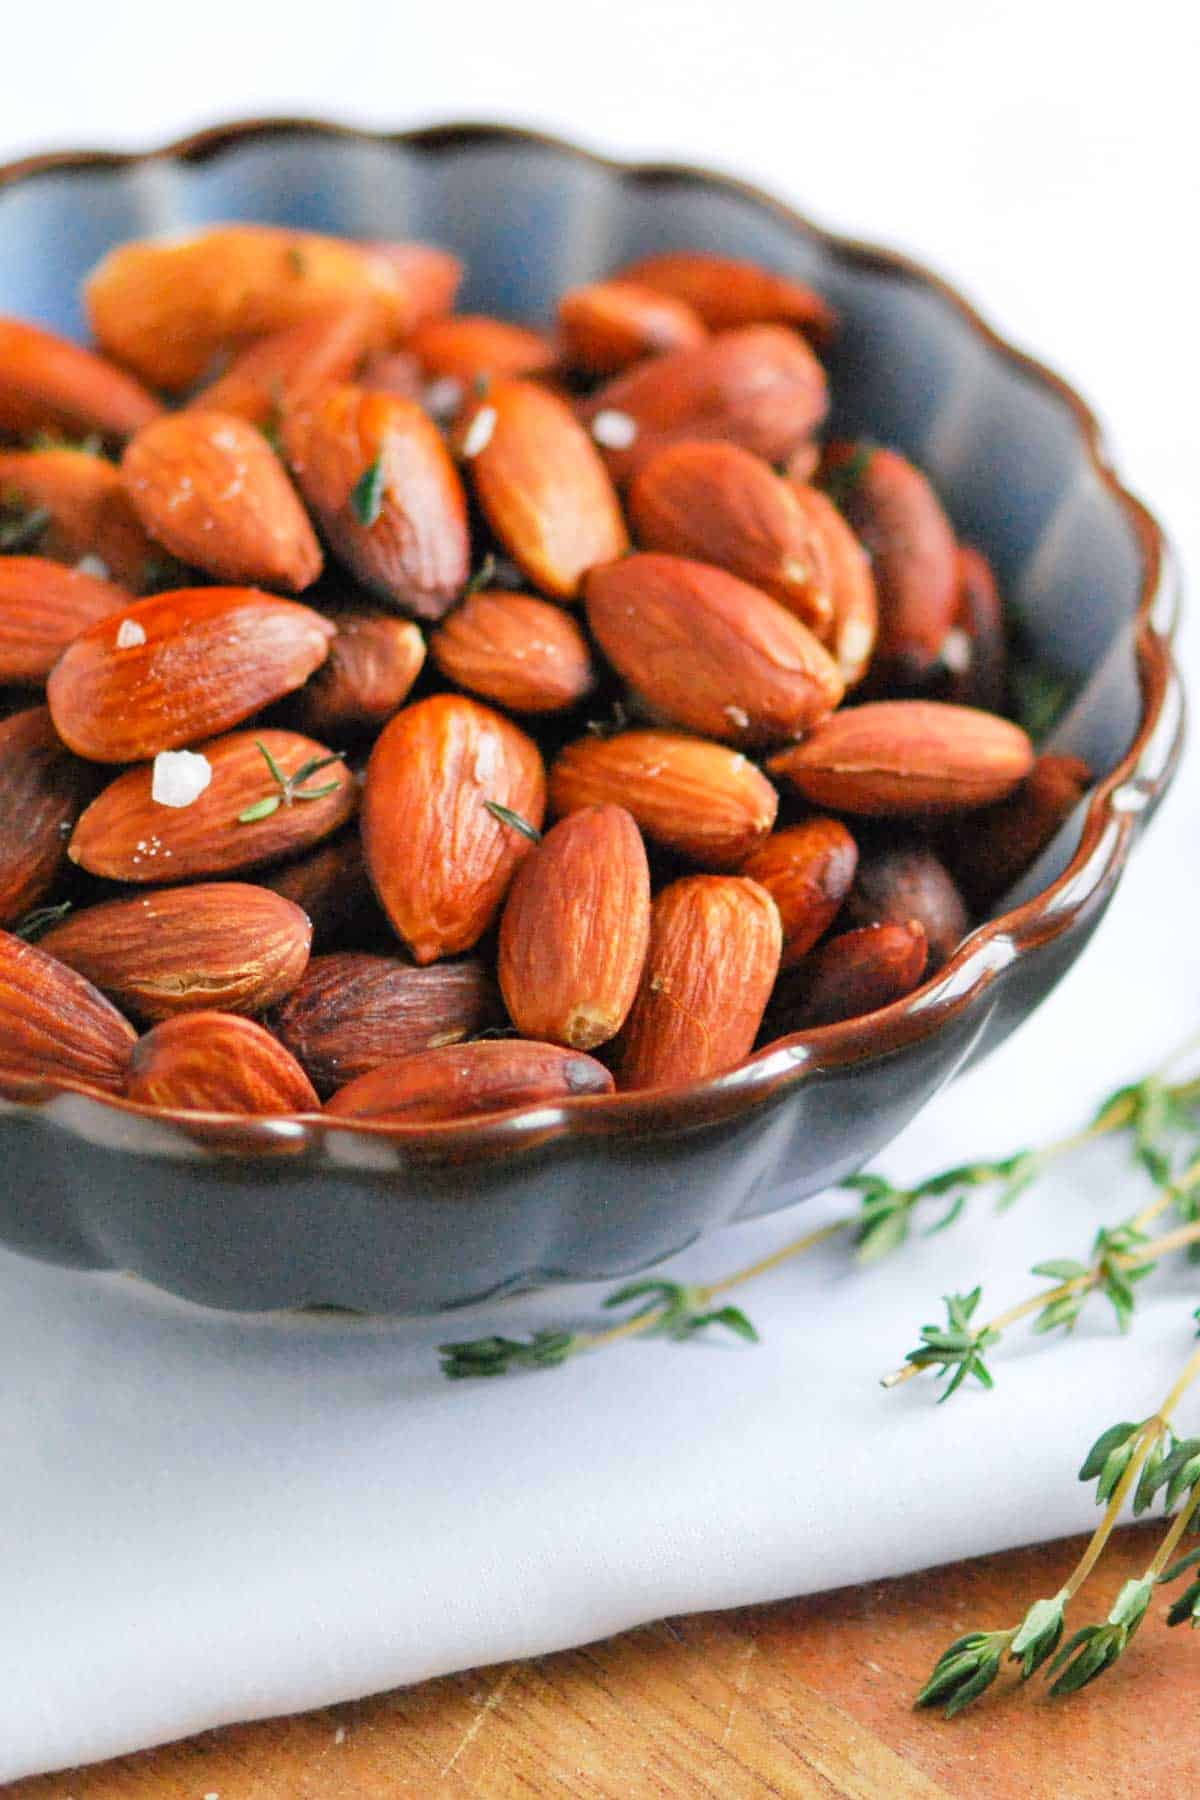 How to Make Salted Roasted Almonds